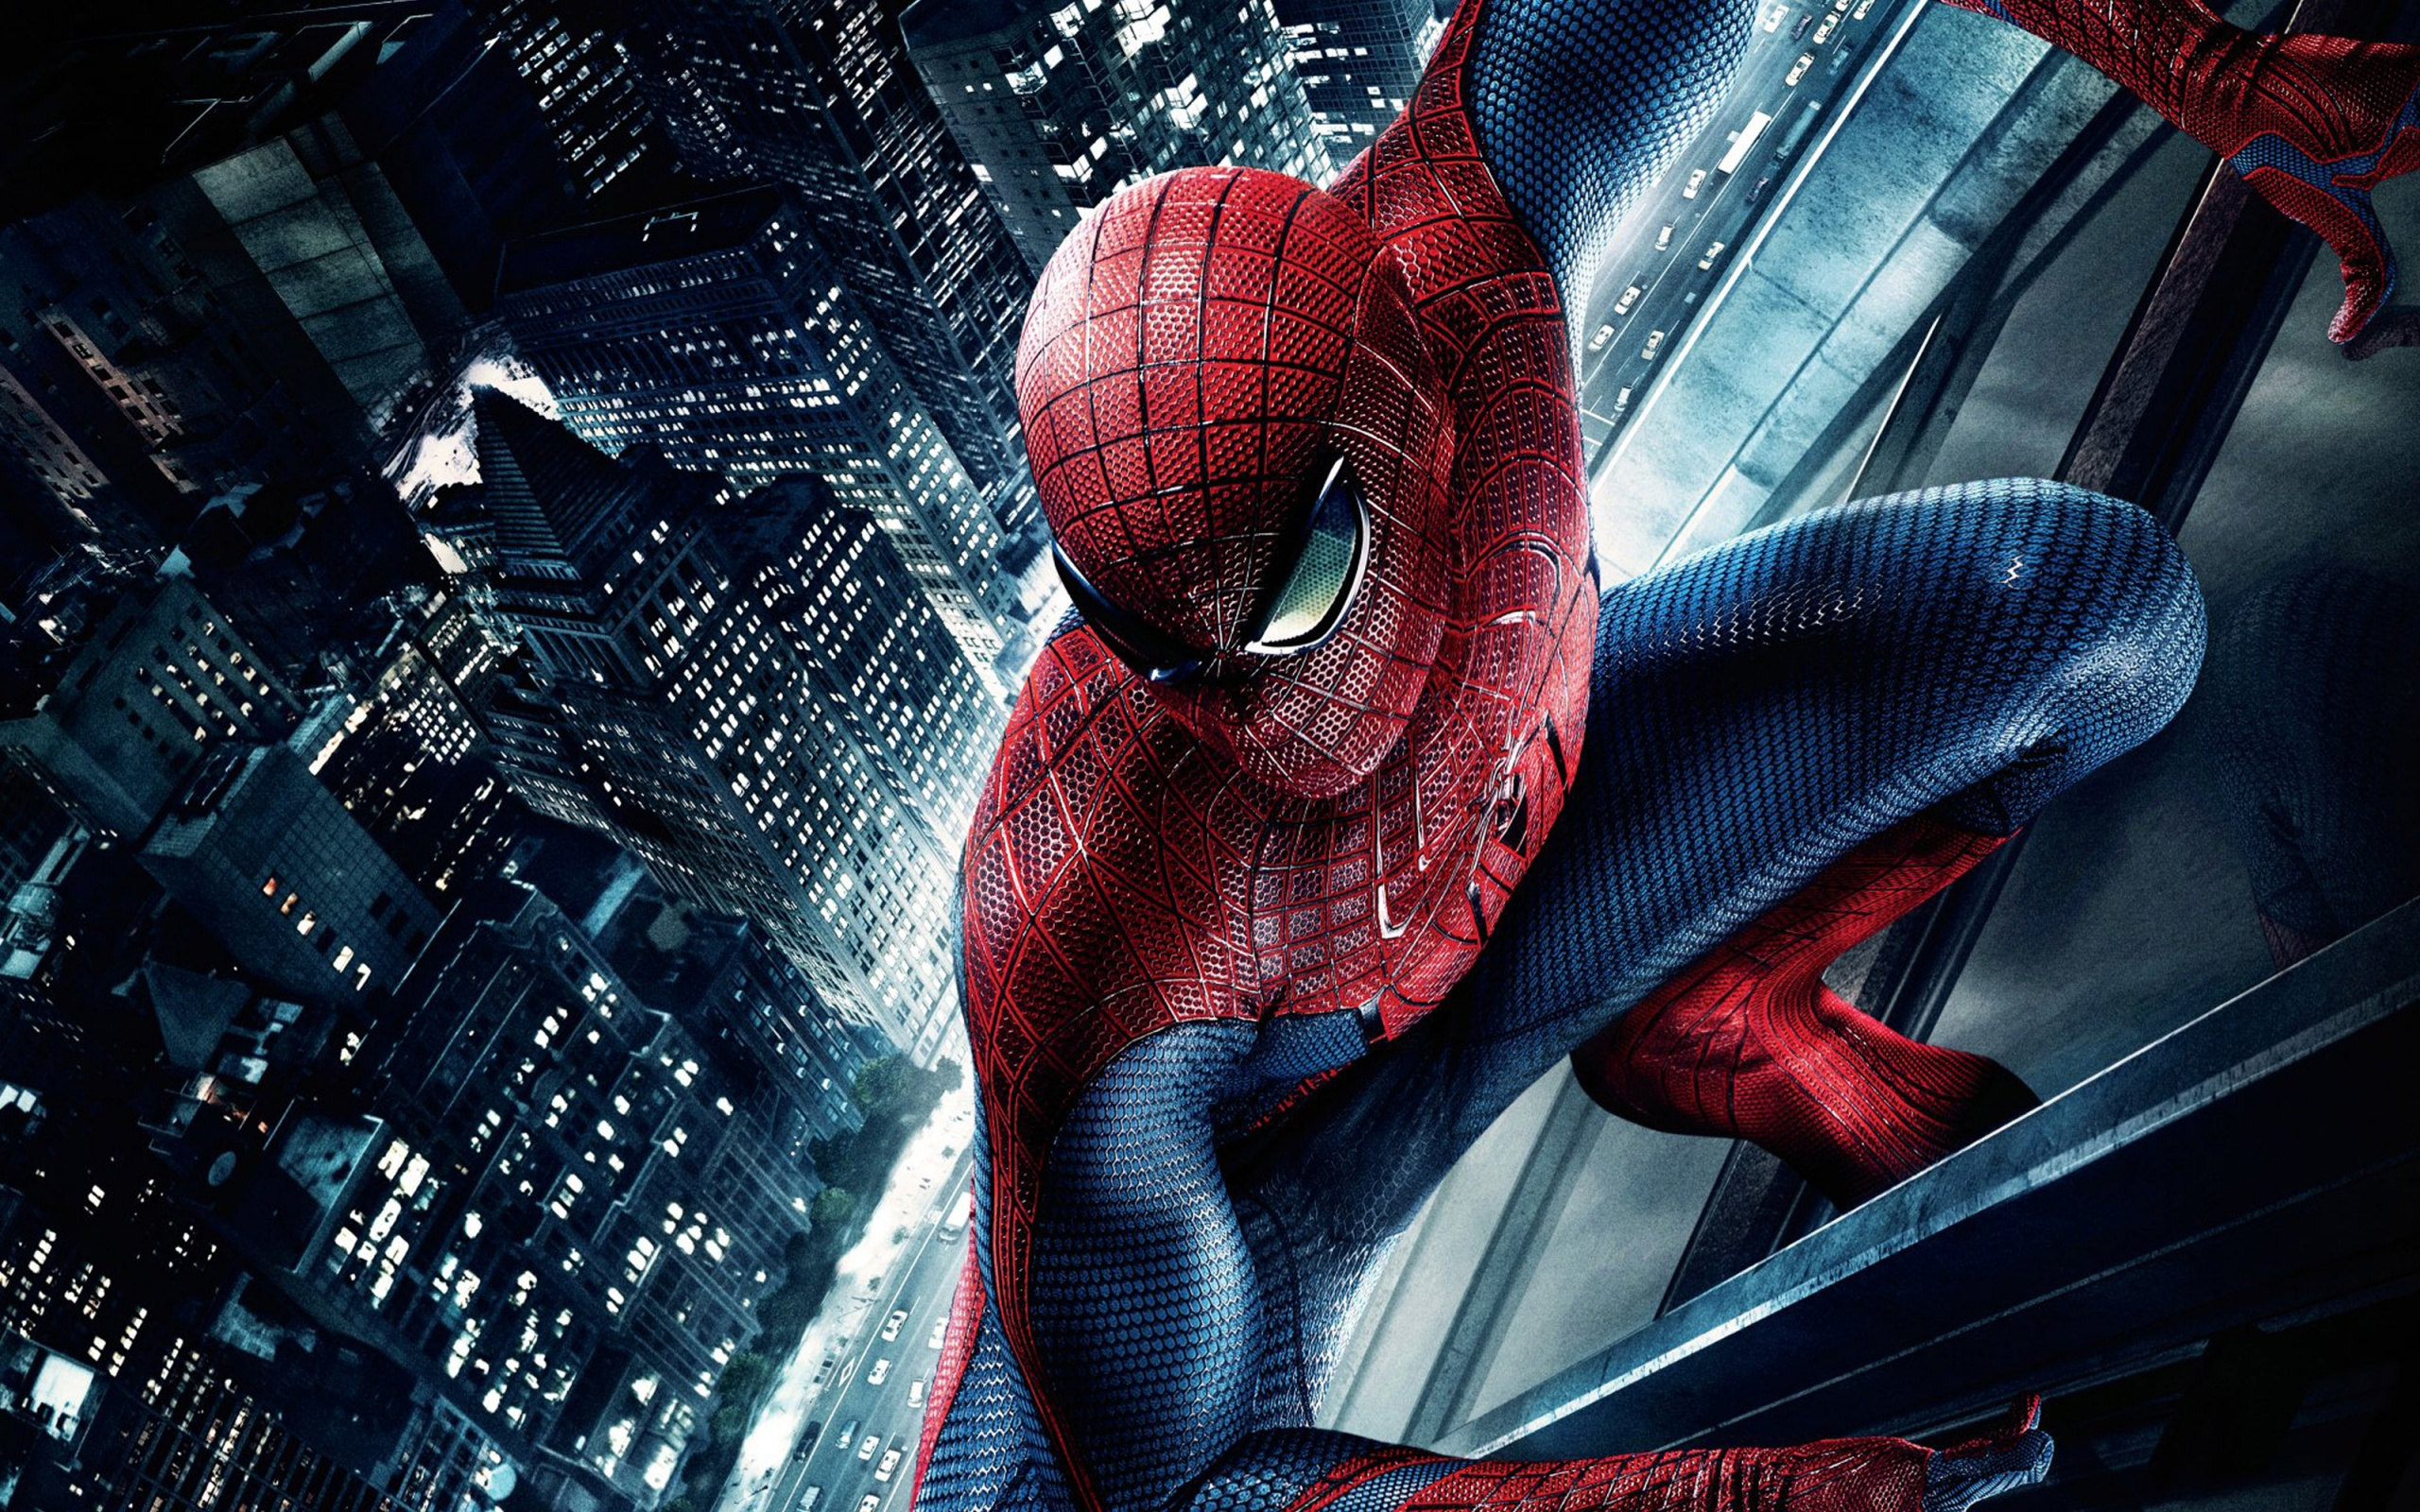 The Amazing Spider Man Over the City desktop wallpaper 2560x1600